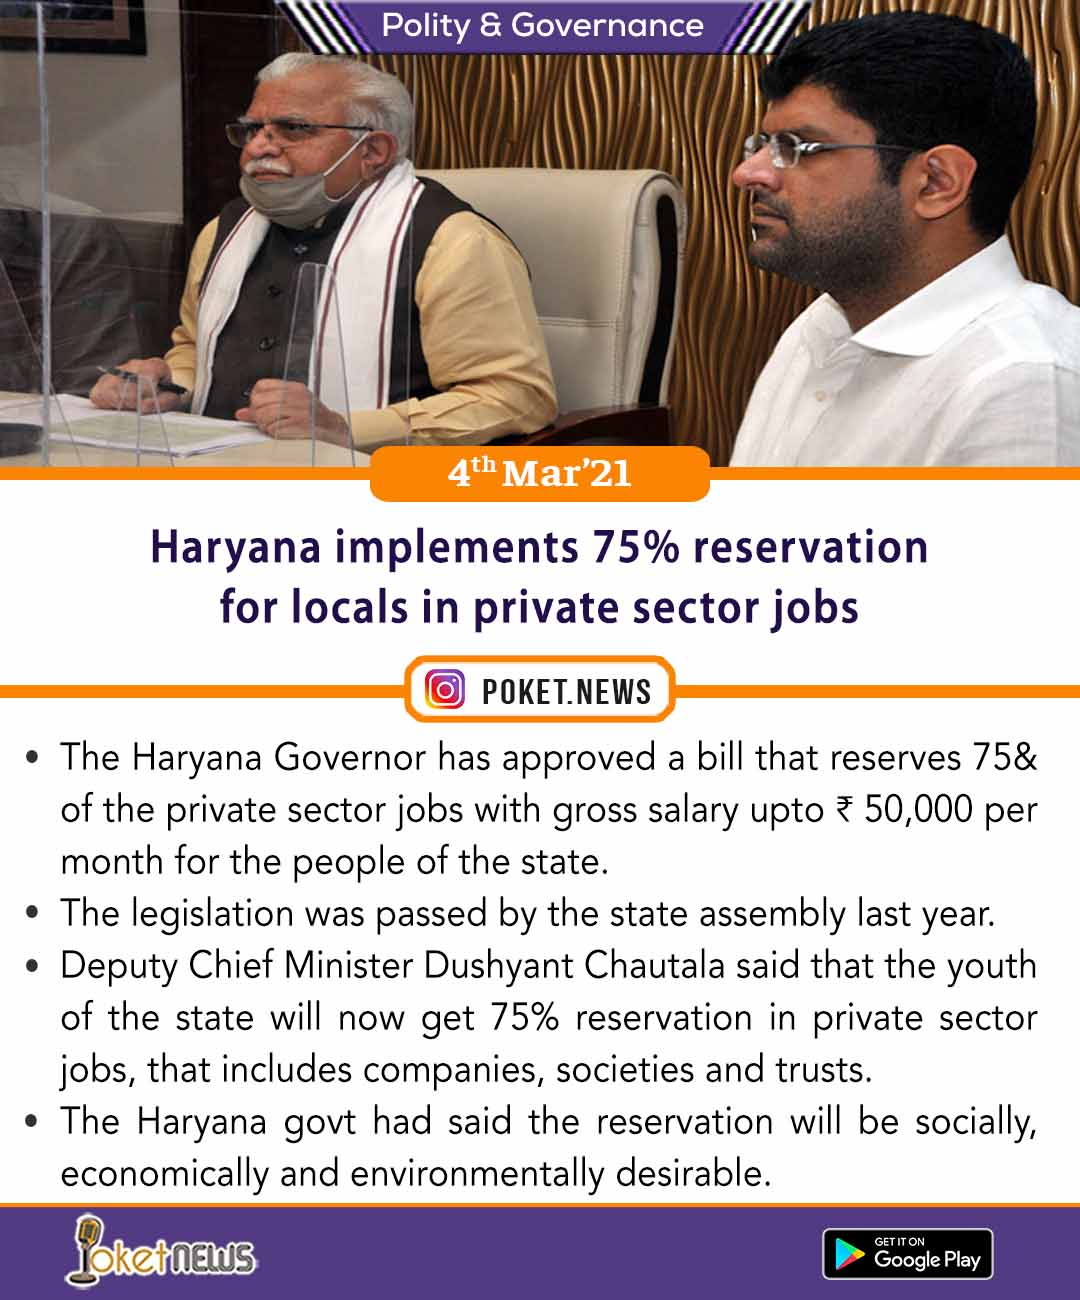 Haryana implements 75% reservation for locals in private sector jobs